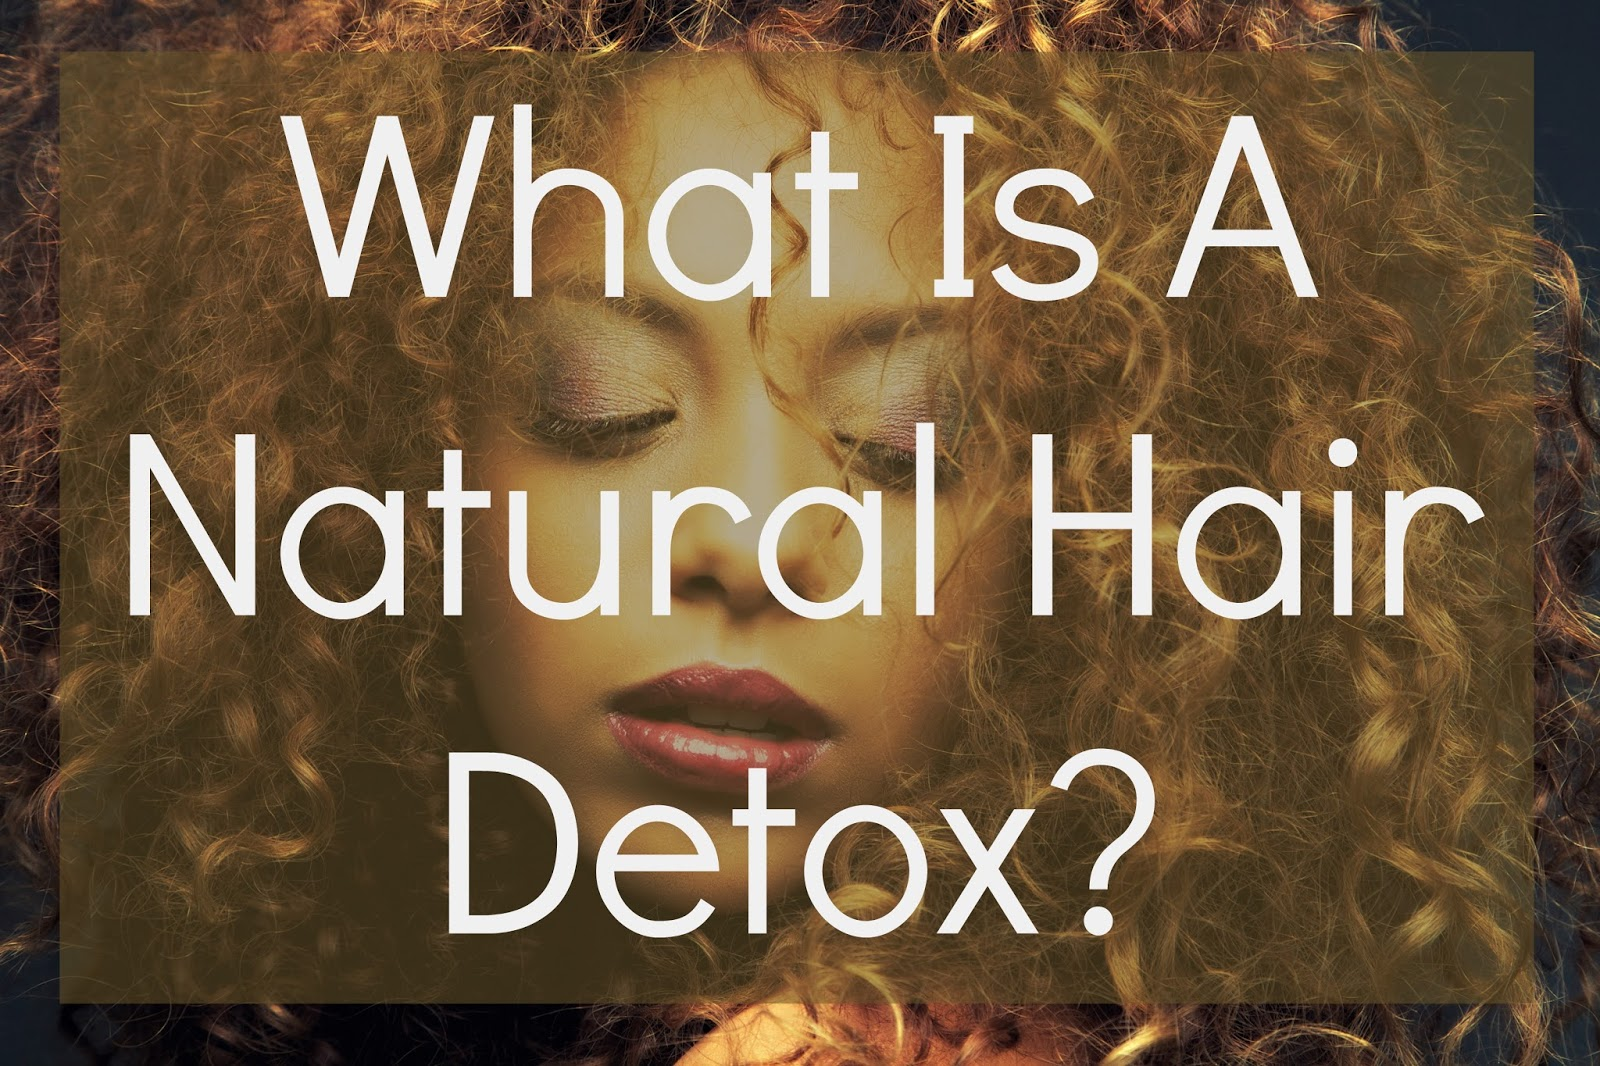 Hair detox is not new, but many in the natural hair community are just becoming aware of them and how vital they can be to a healthy natural hair journey.